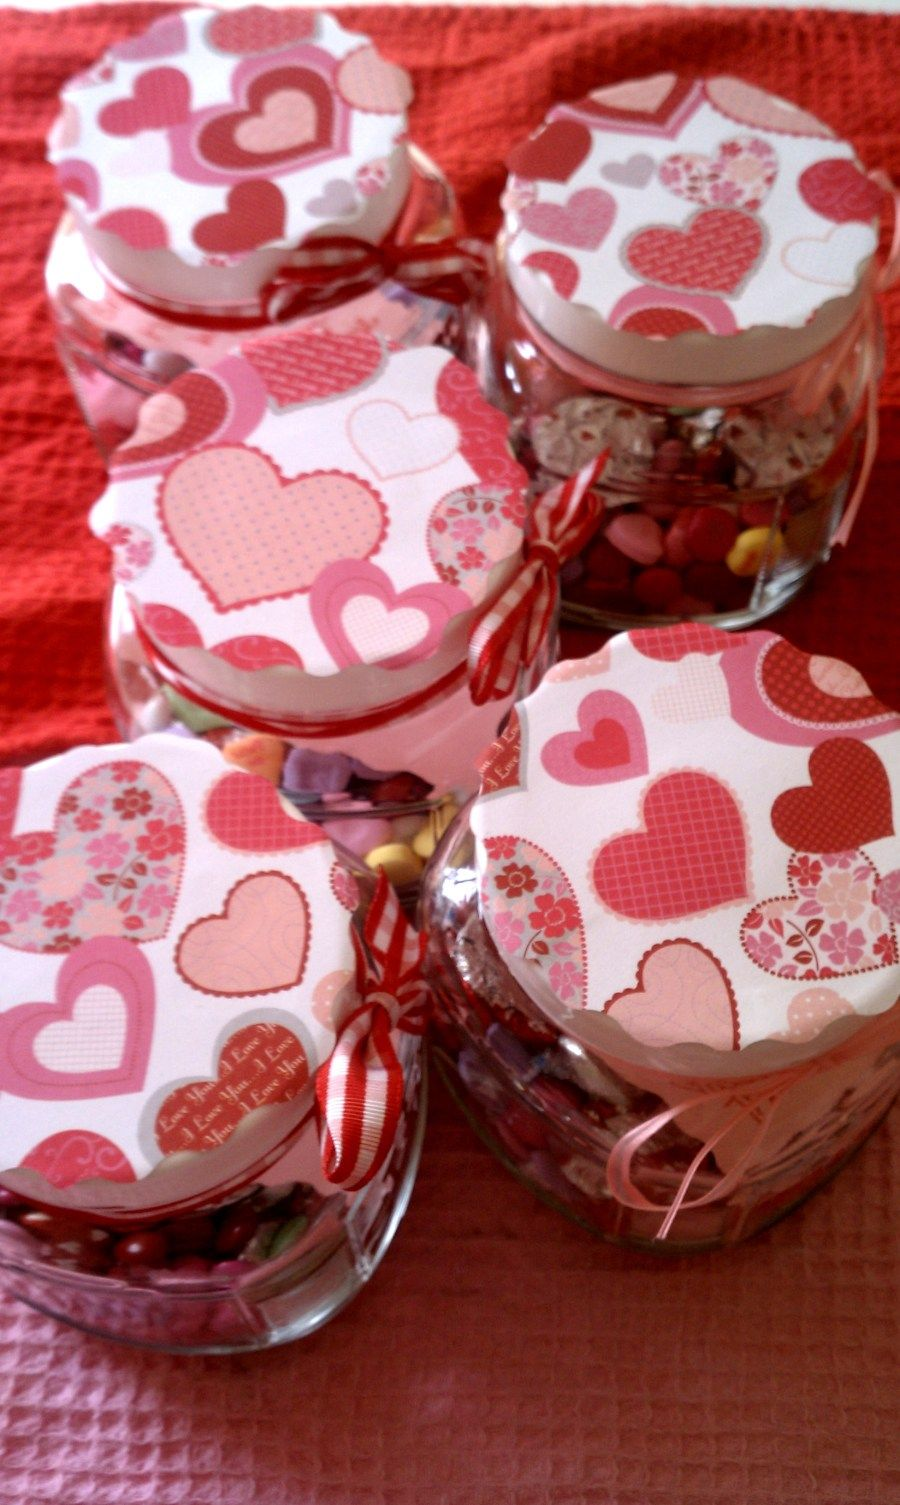 DIY Valentine's Candy Jars Diy valentine's gifts for